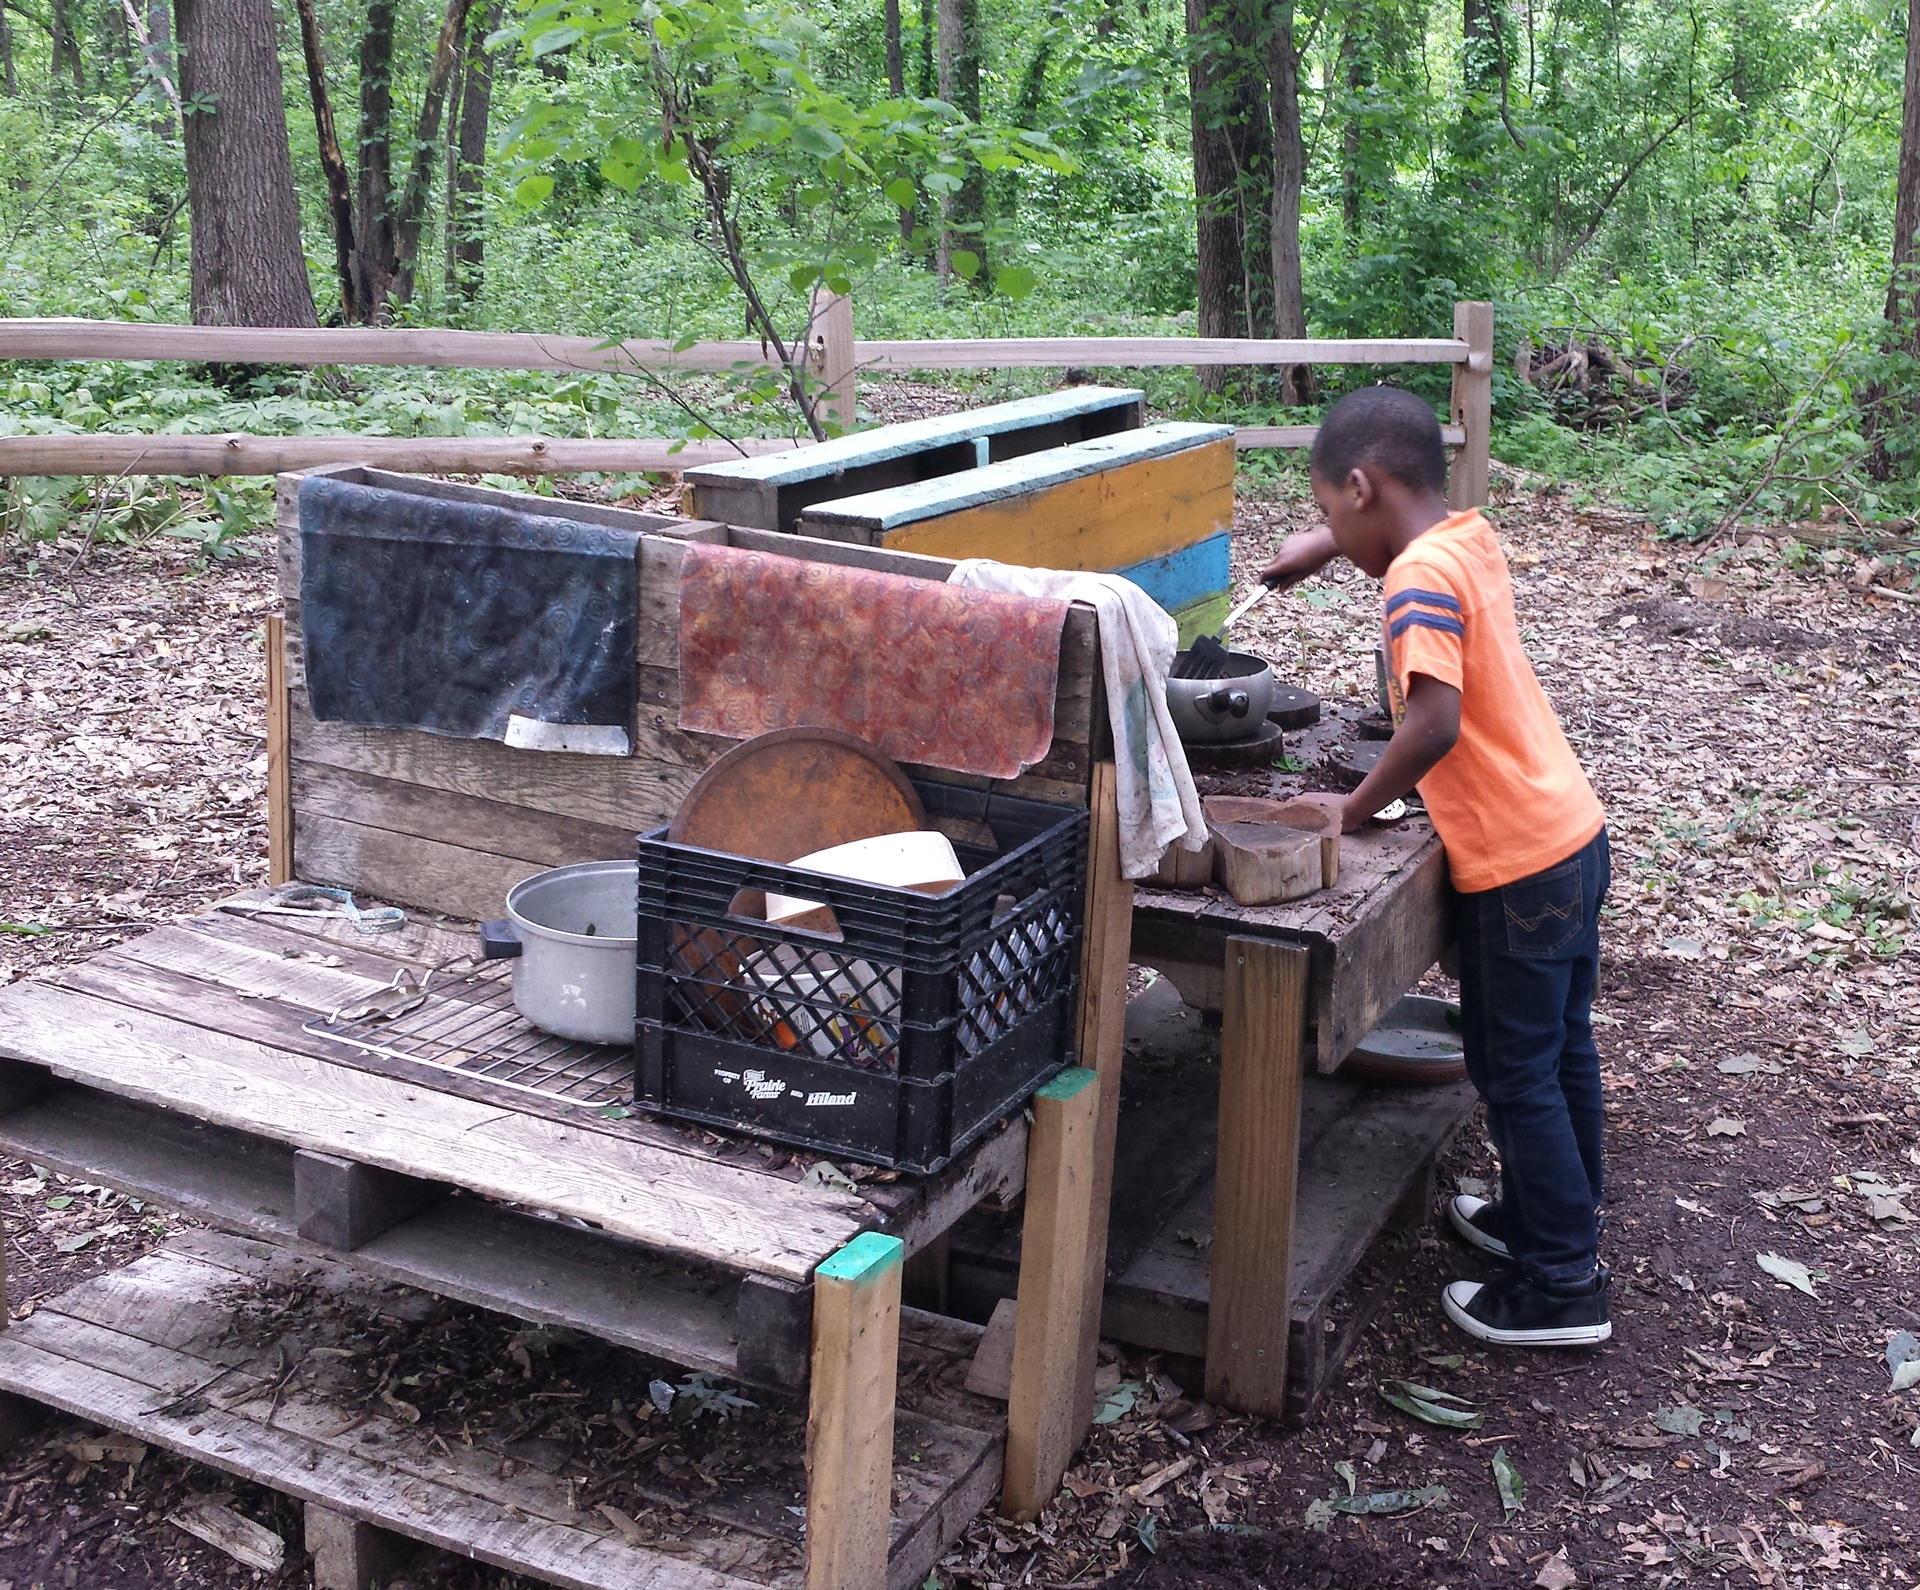 A student cooks a meal using an outdoor kitchen in the Little Creek Nature Area's Discovery Classroom.